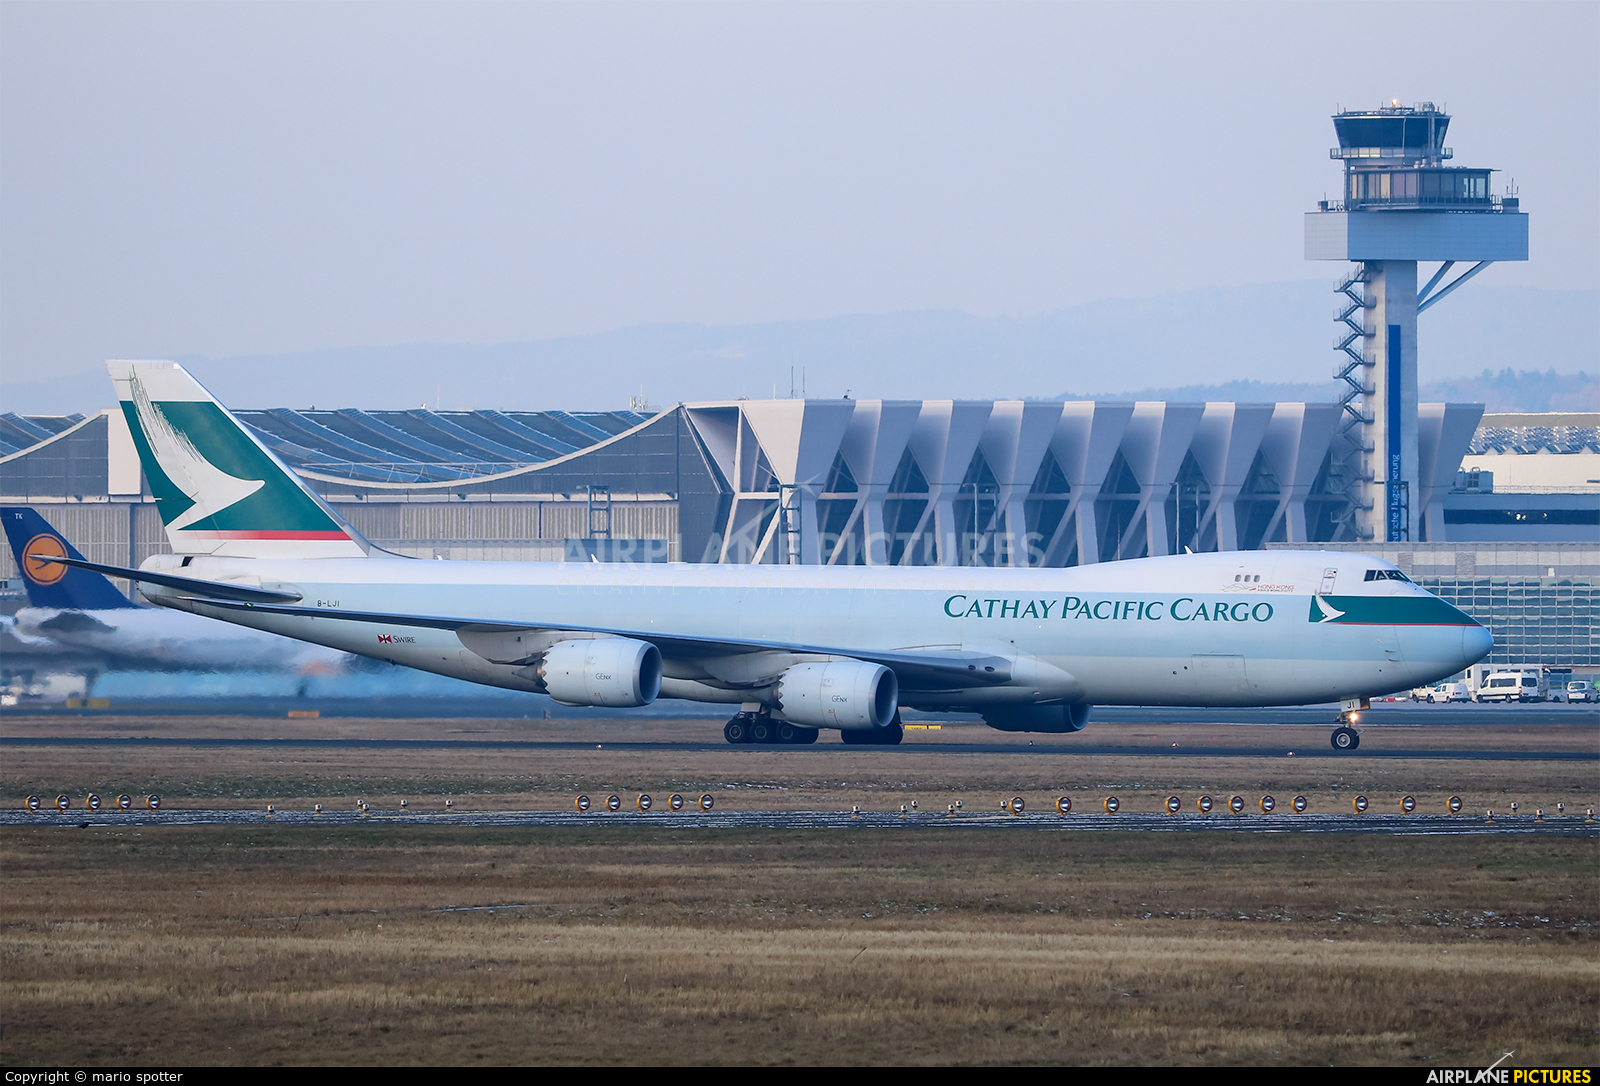 Cathay Pacific Cargo B-LJI aircraft at Frankfurt